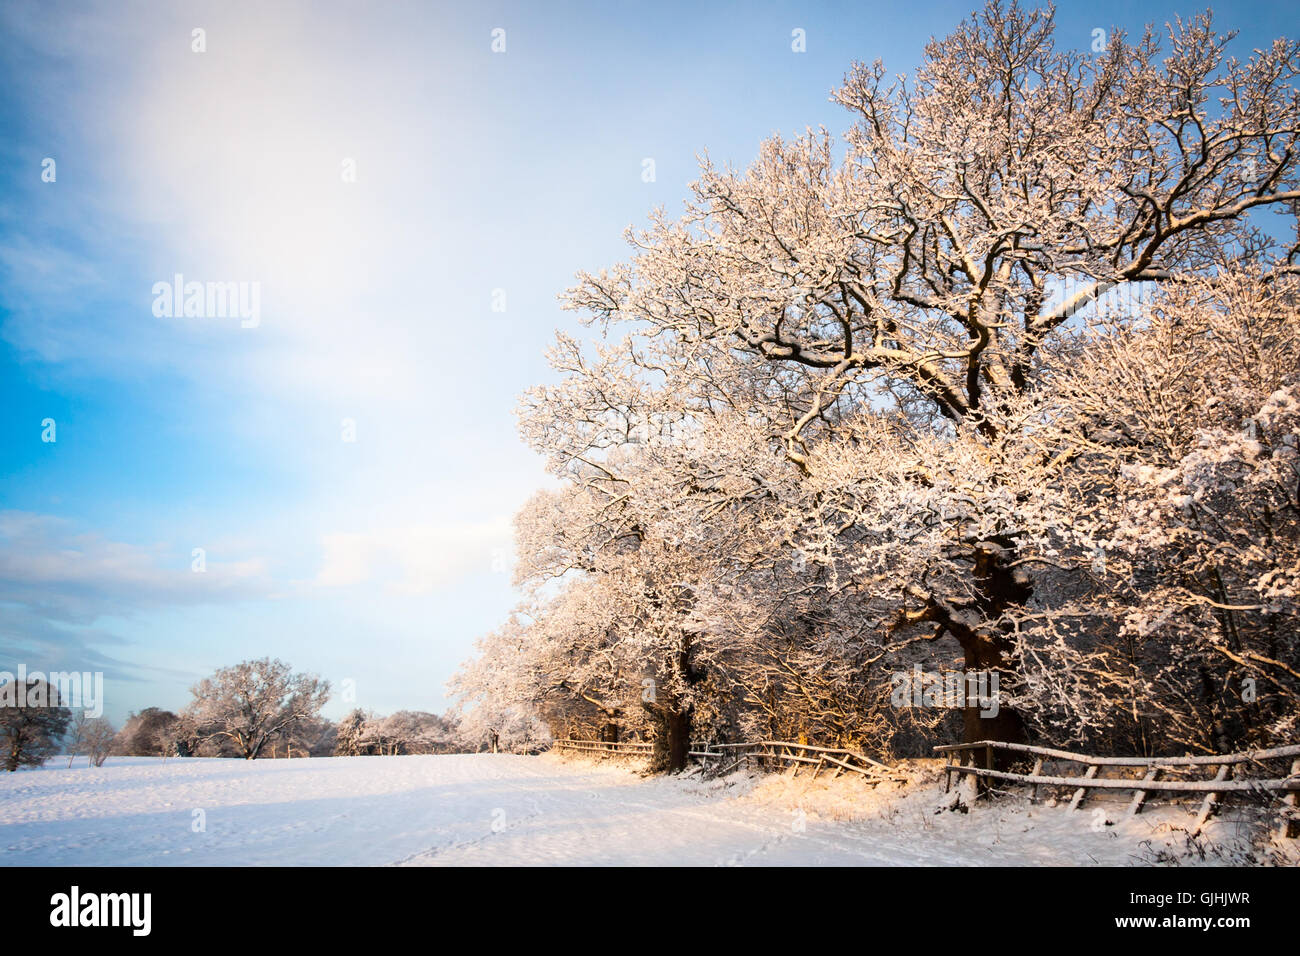 Snow covers a field and the bare branches of a large tree on a sunny blue sky winters day Stock Photo